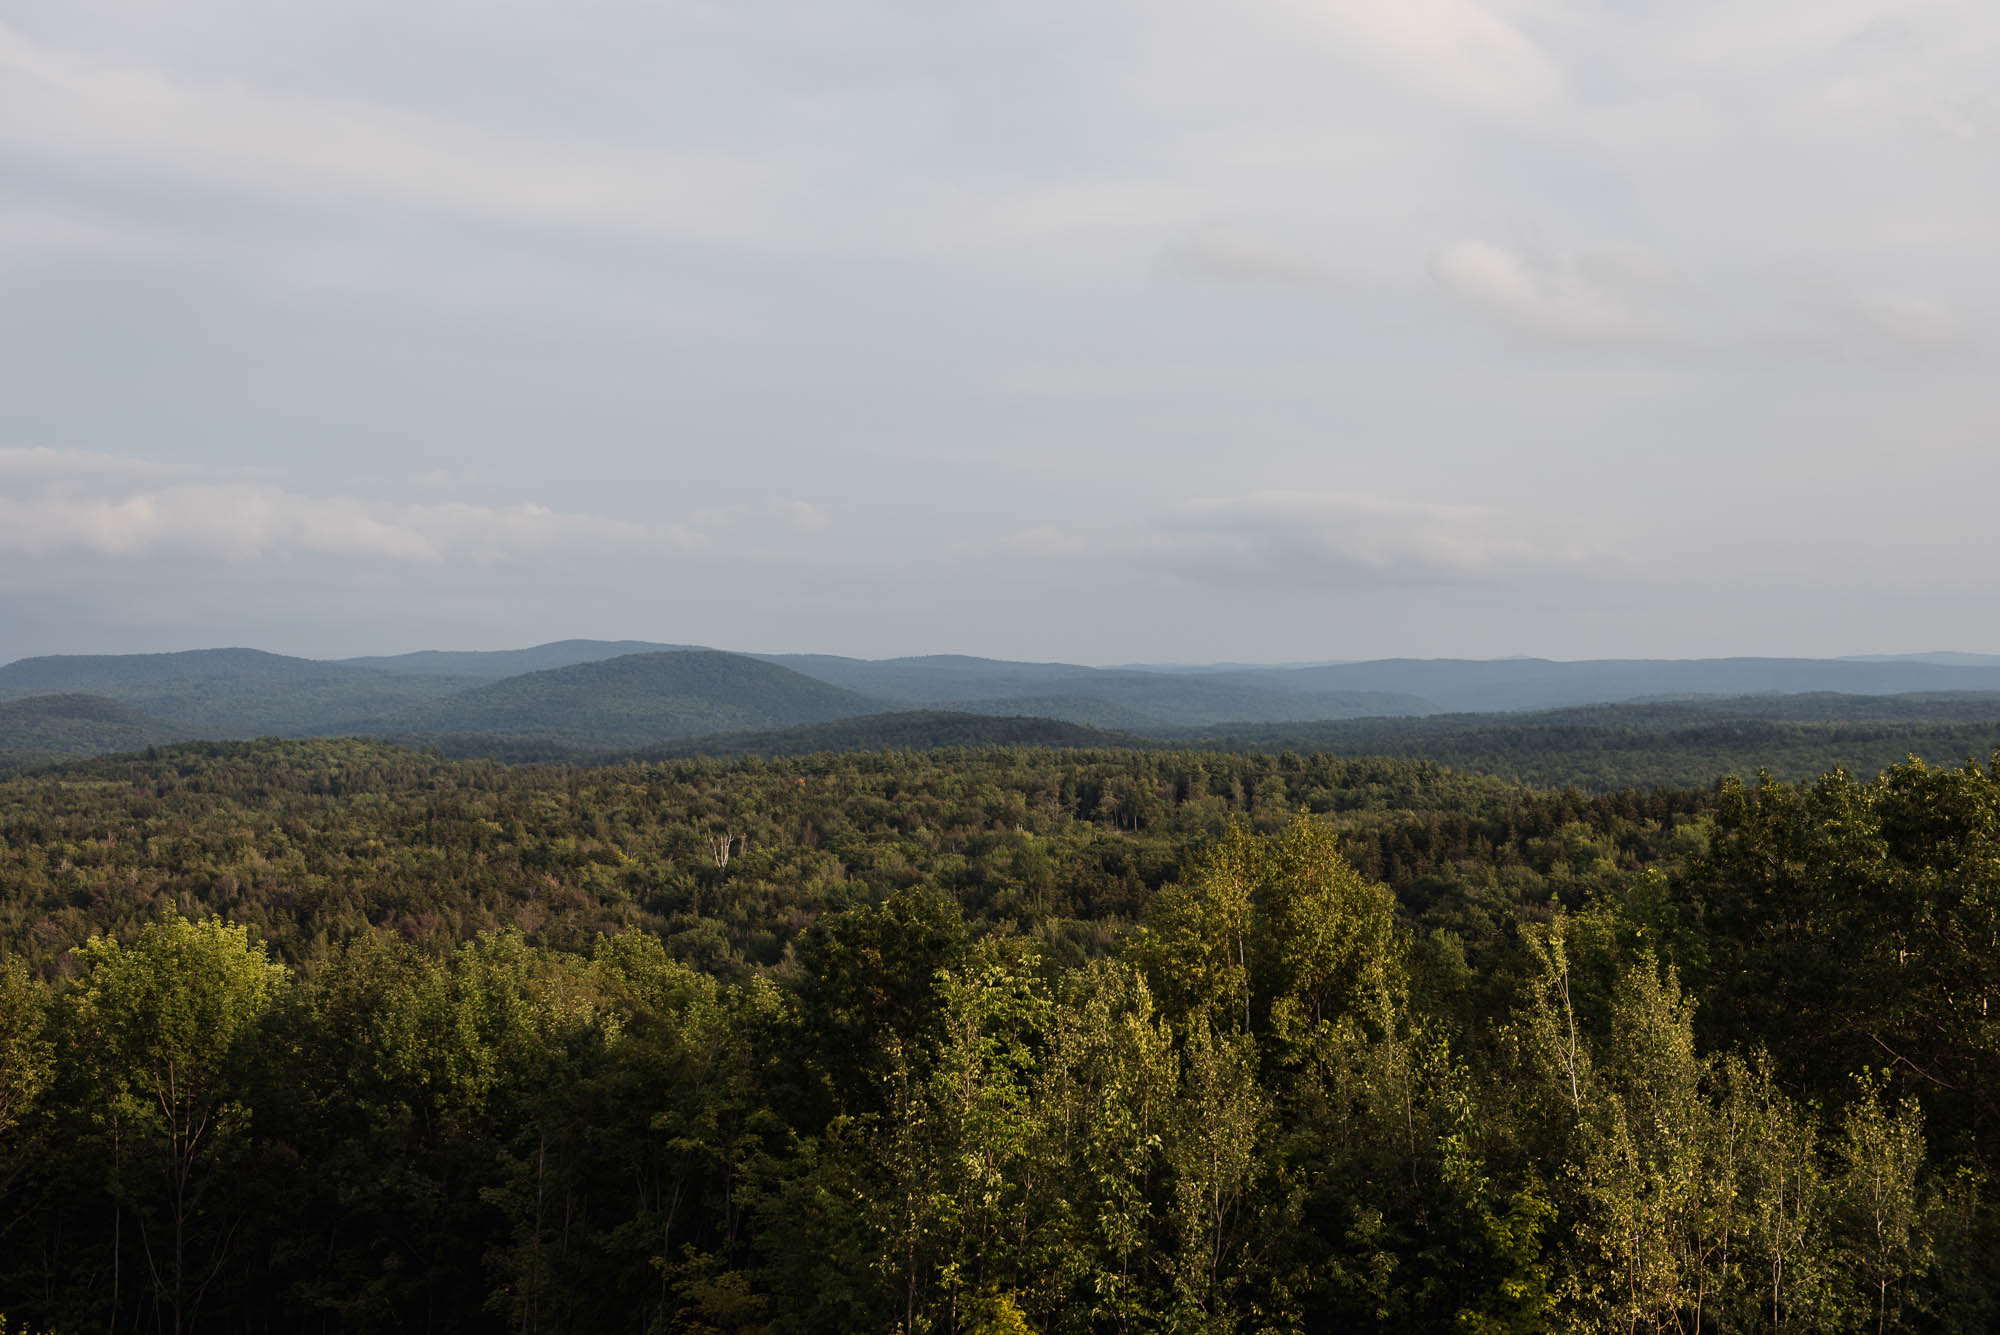 overlook across vermont forest from highway 101 picture by megan cieloha